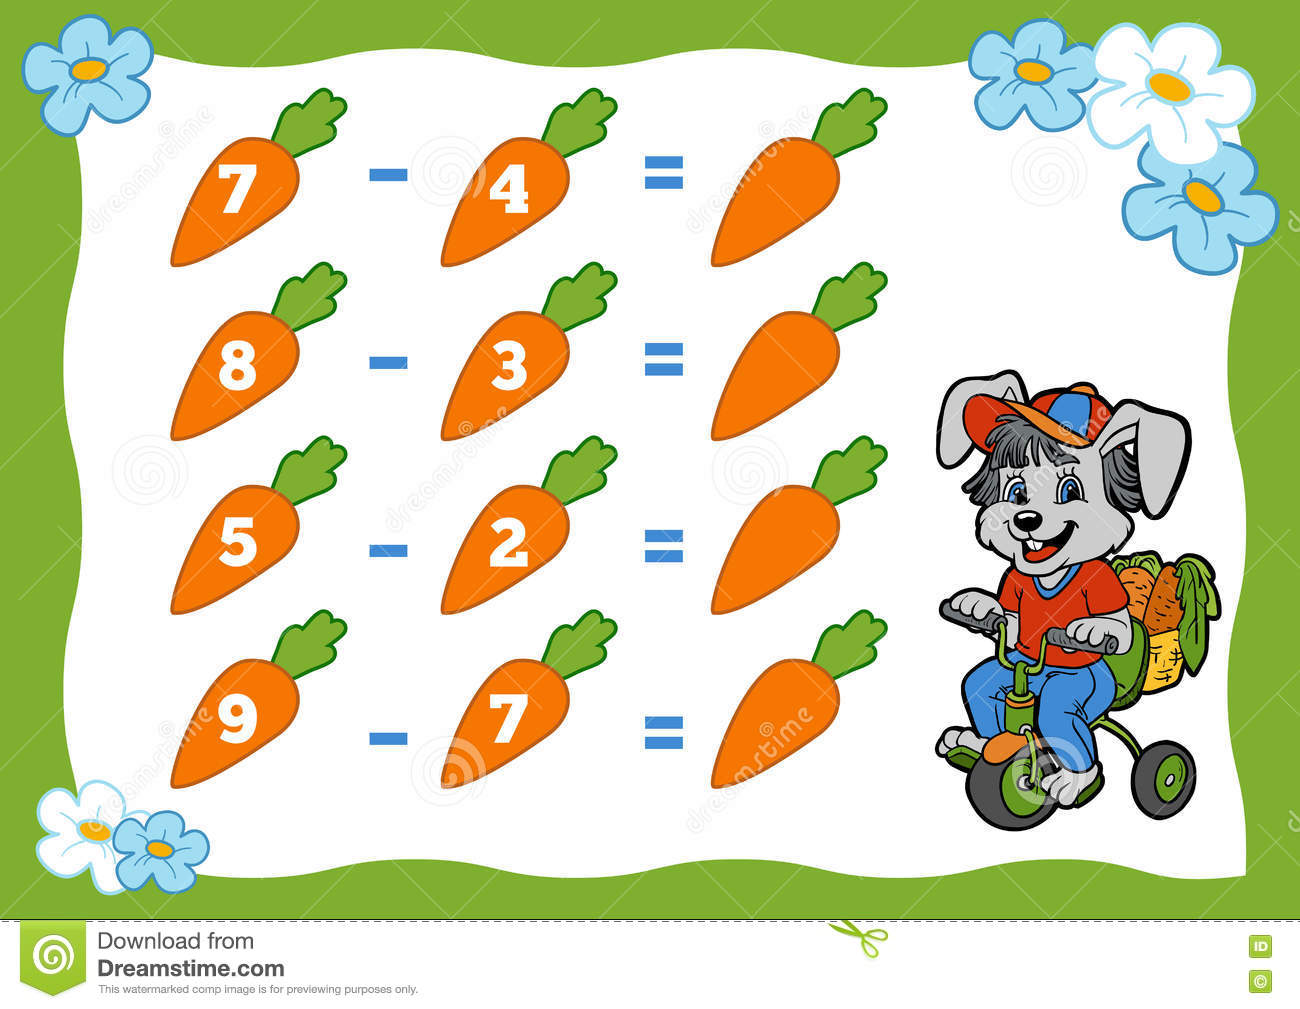 Counting Game For Children Subtraction Worksheets Rabbit